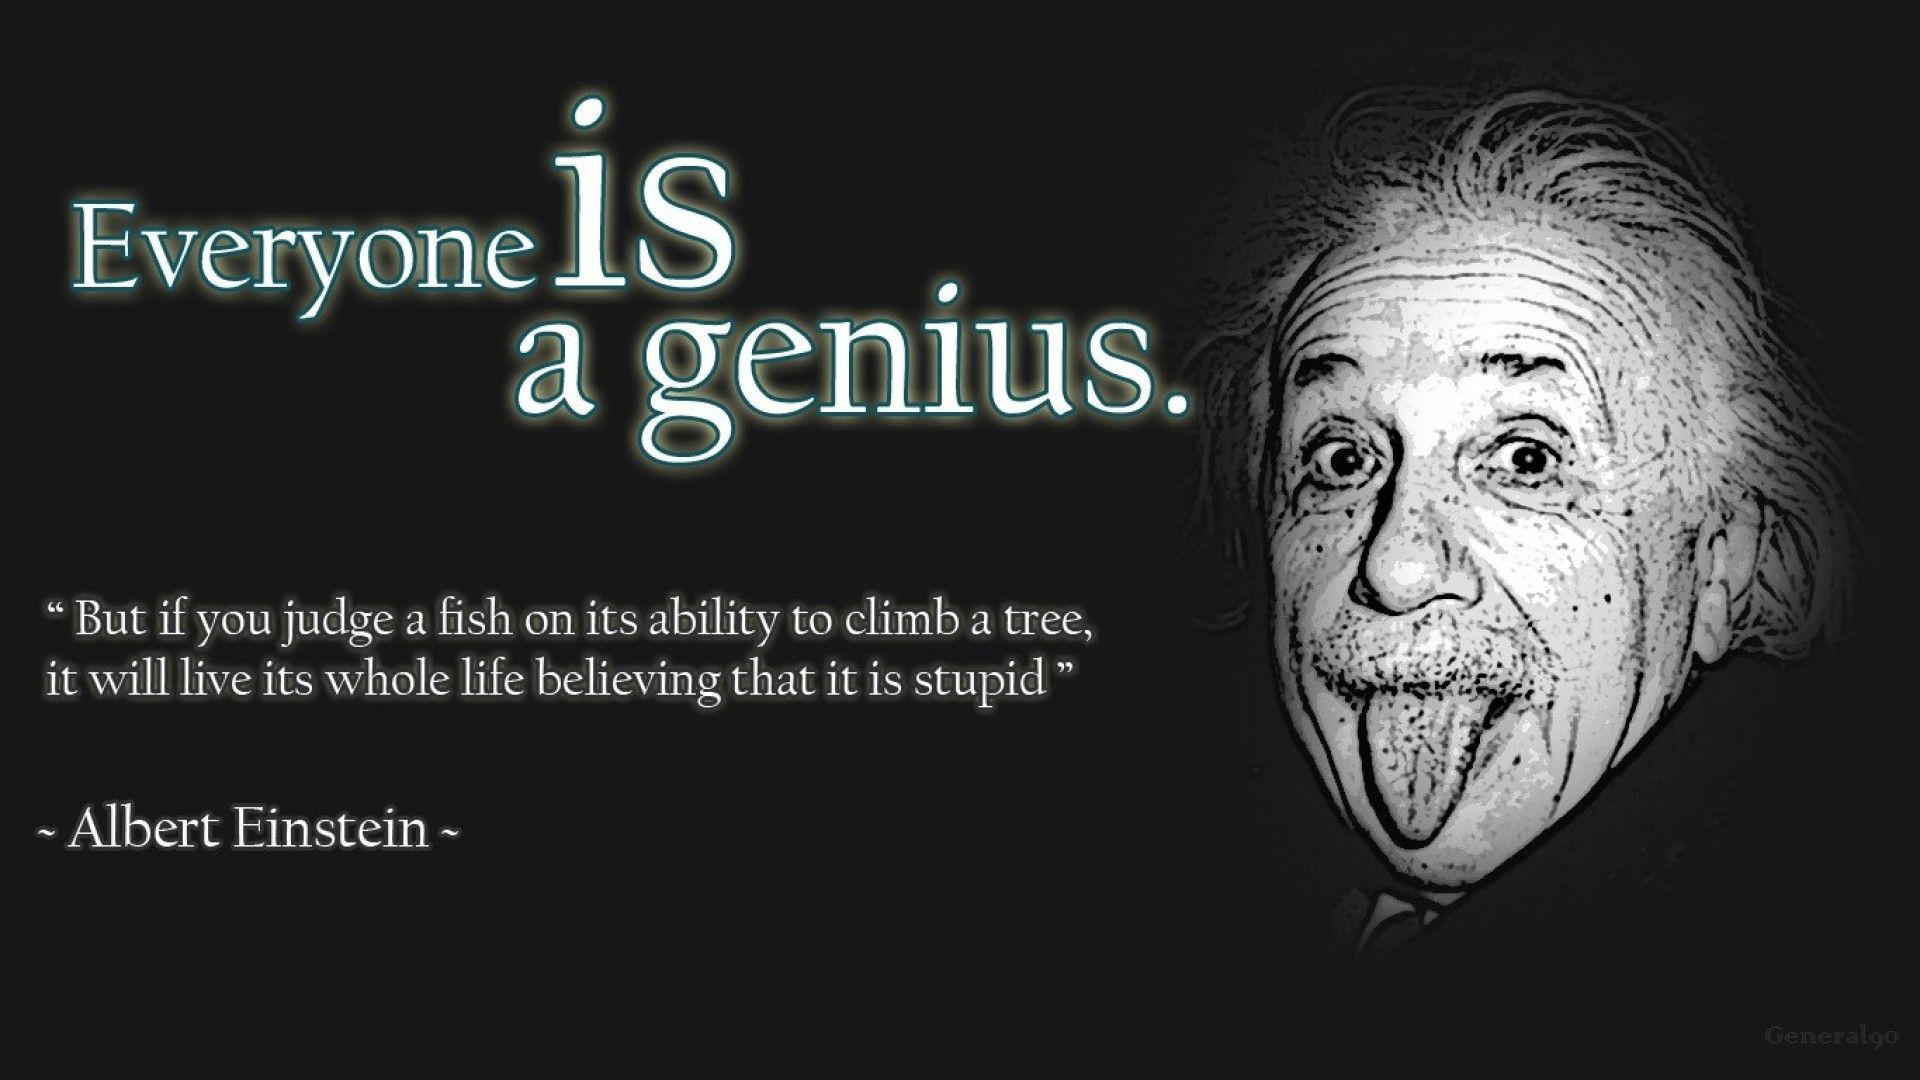 Albert Einstein Quotes High Quality Wallpapers Quotes Albert 1920x1080